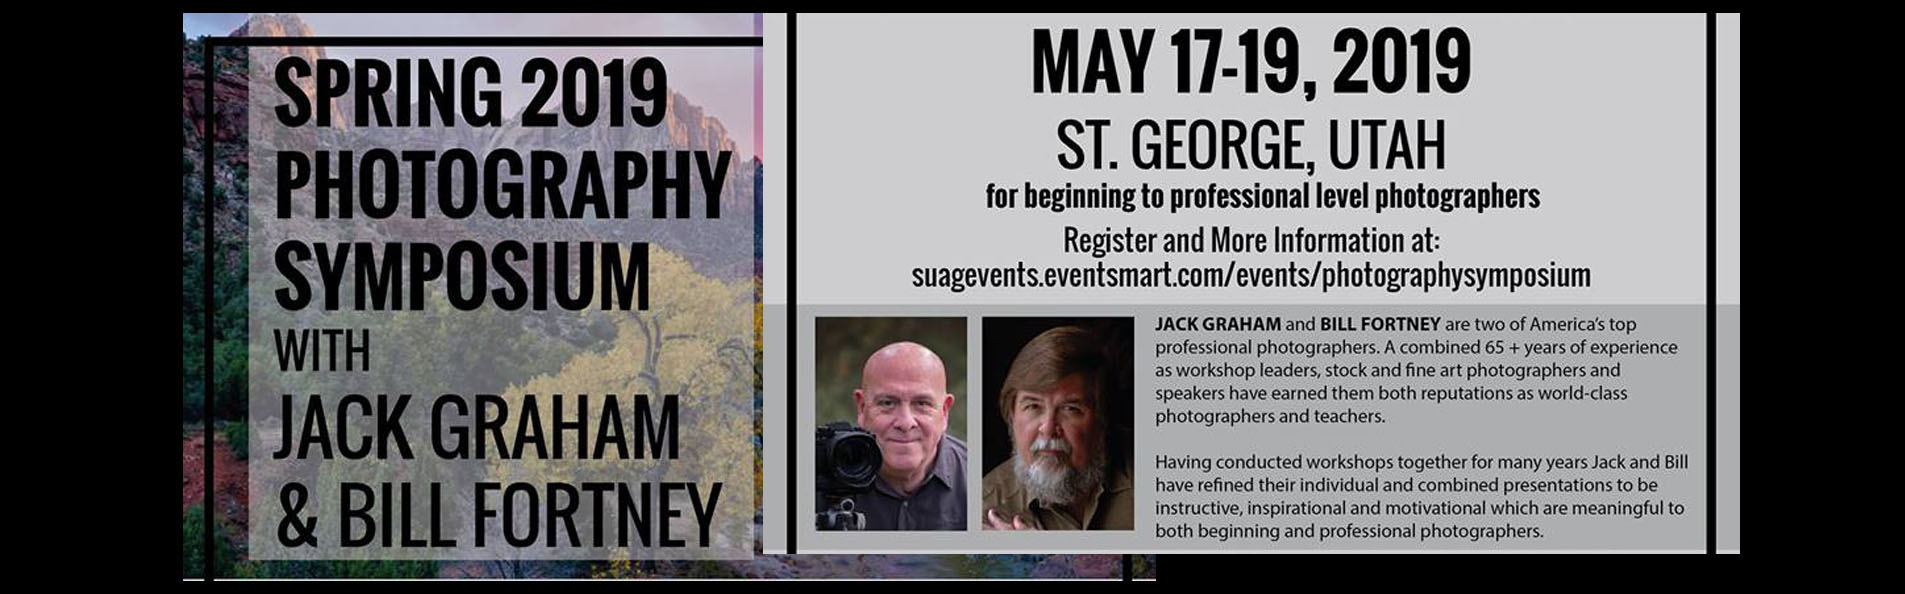 Photography Symposium with Jack Graham and Bill Fortney